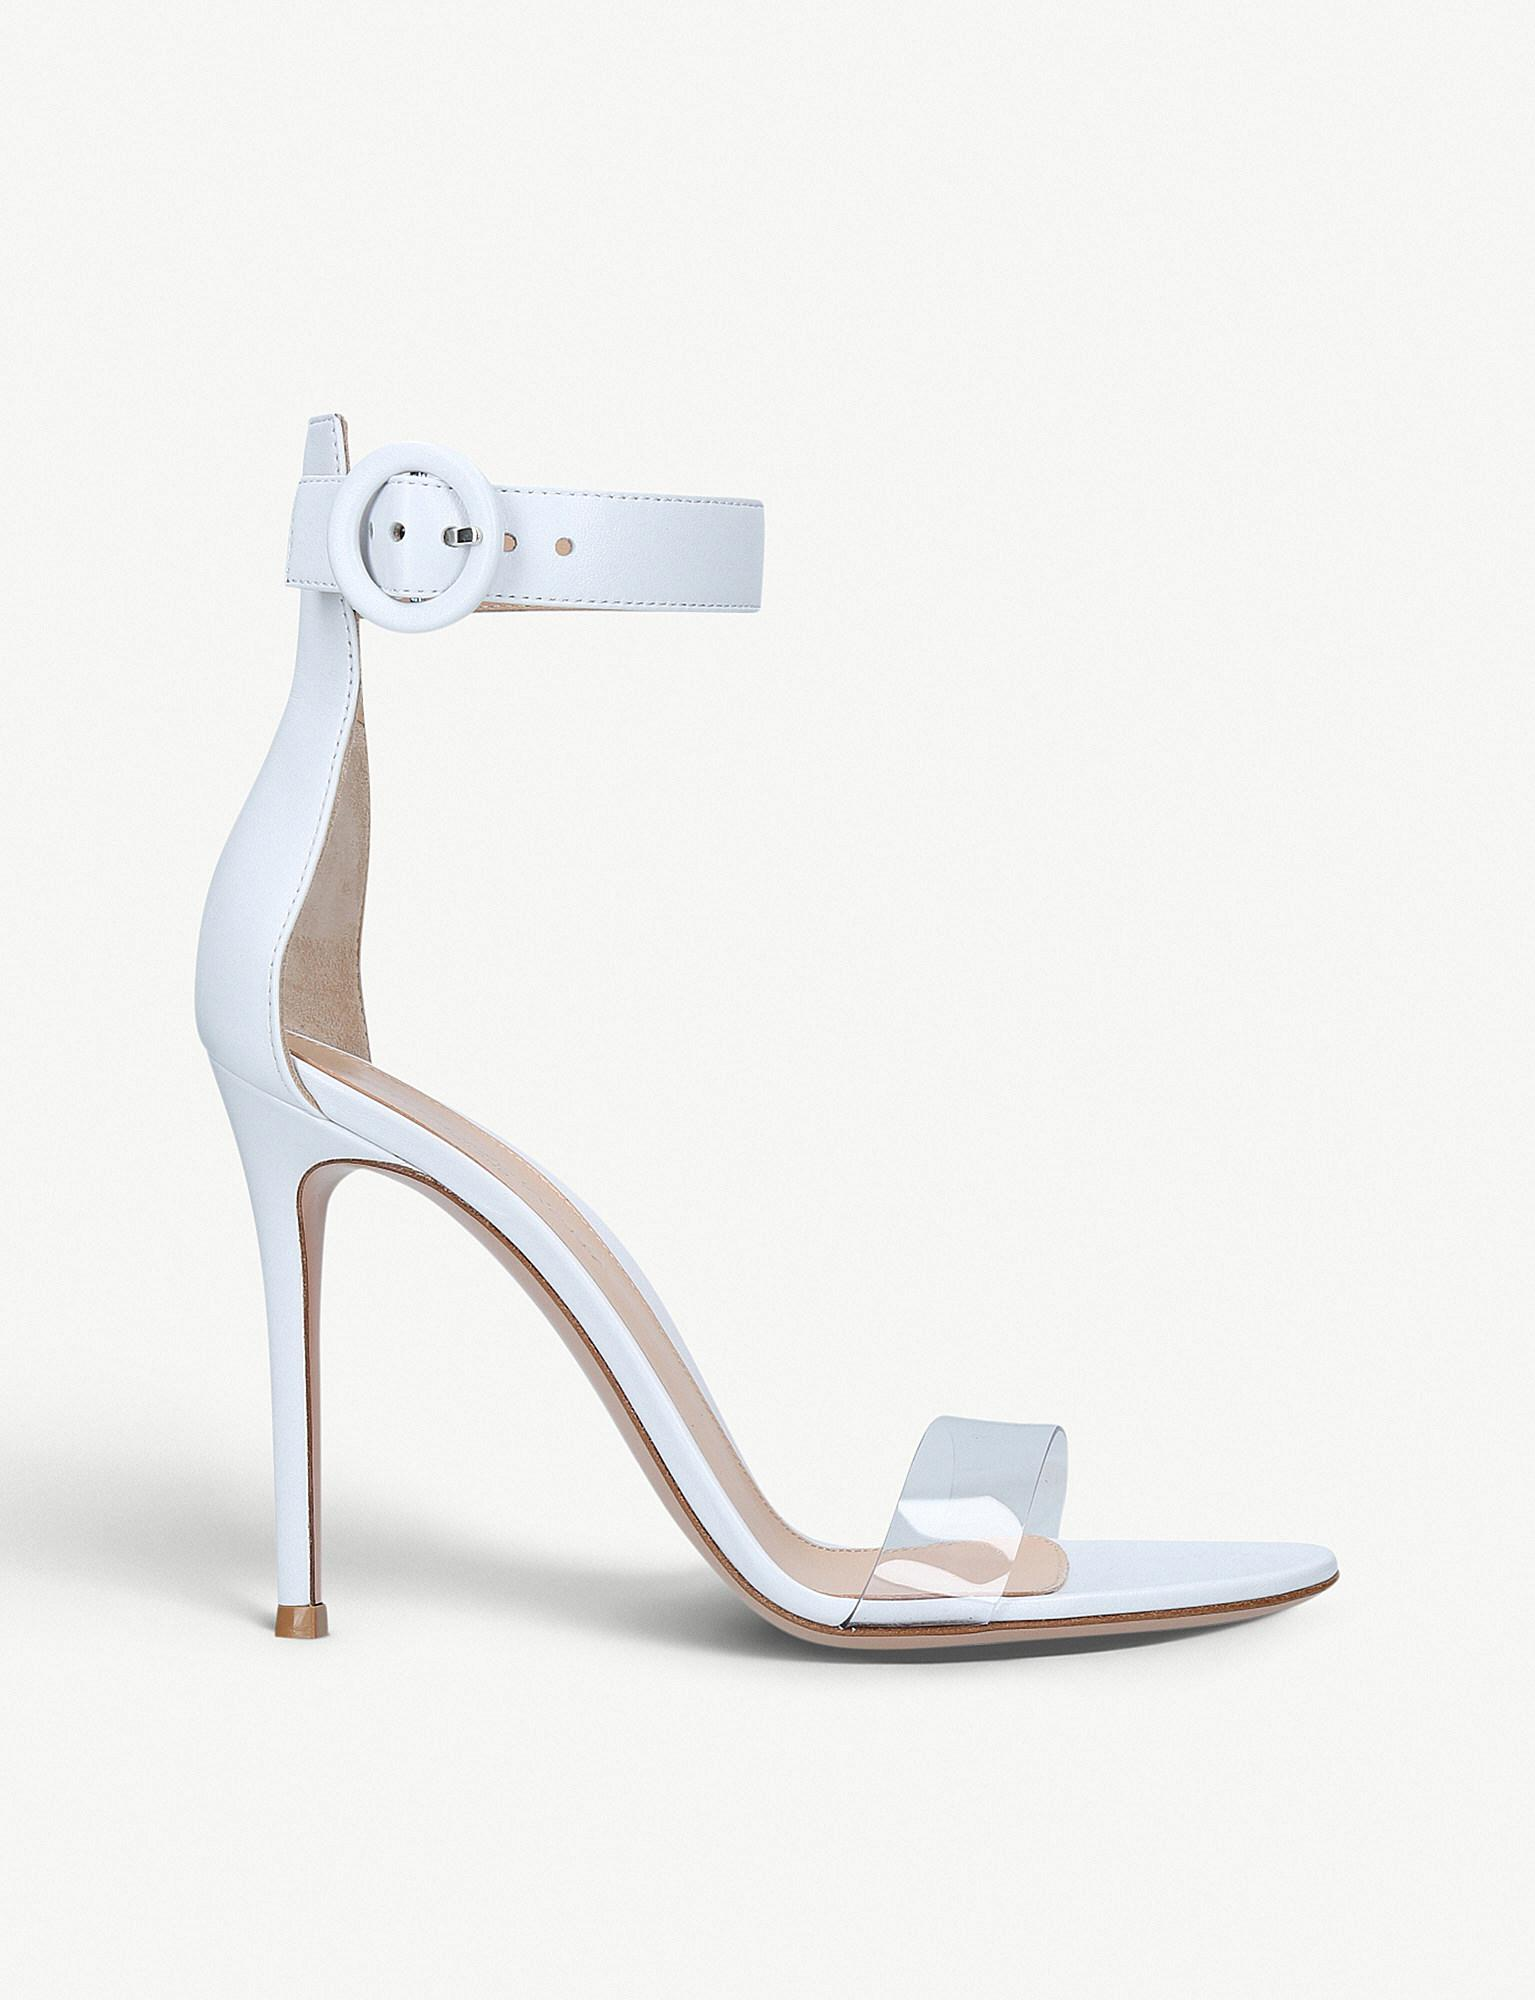 Stella 105 White Plexi Leather Sandals Gianvito Rossi Wear Resistance Outlet Low Price Authentic lTmxYv